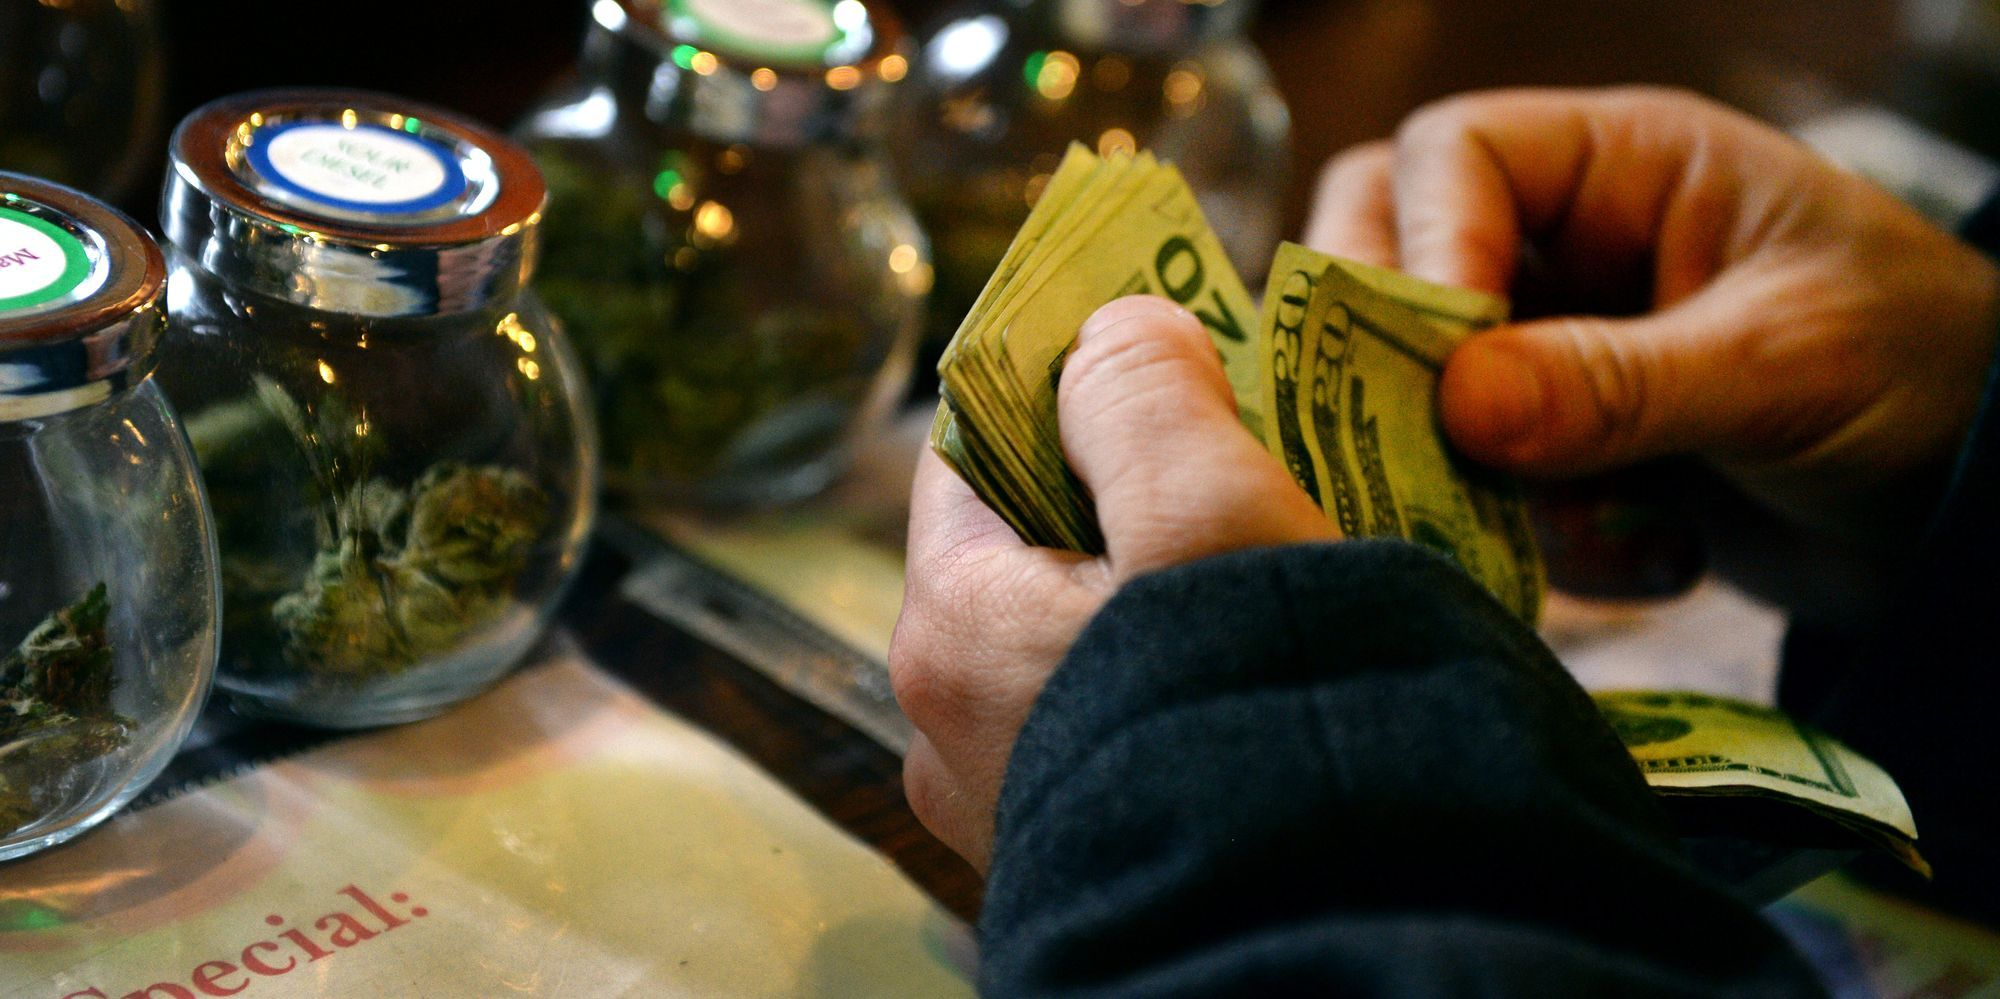 North Americans Spent $53.3 Billion On Marijuana Last Year, Most Of It Illegally